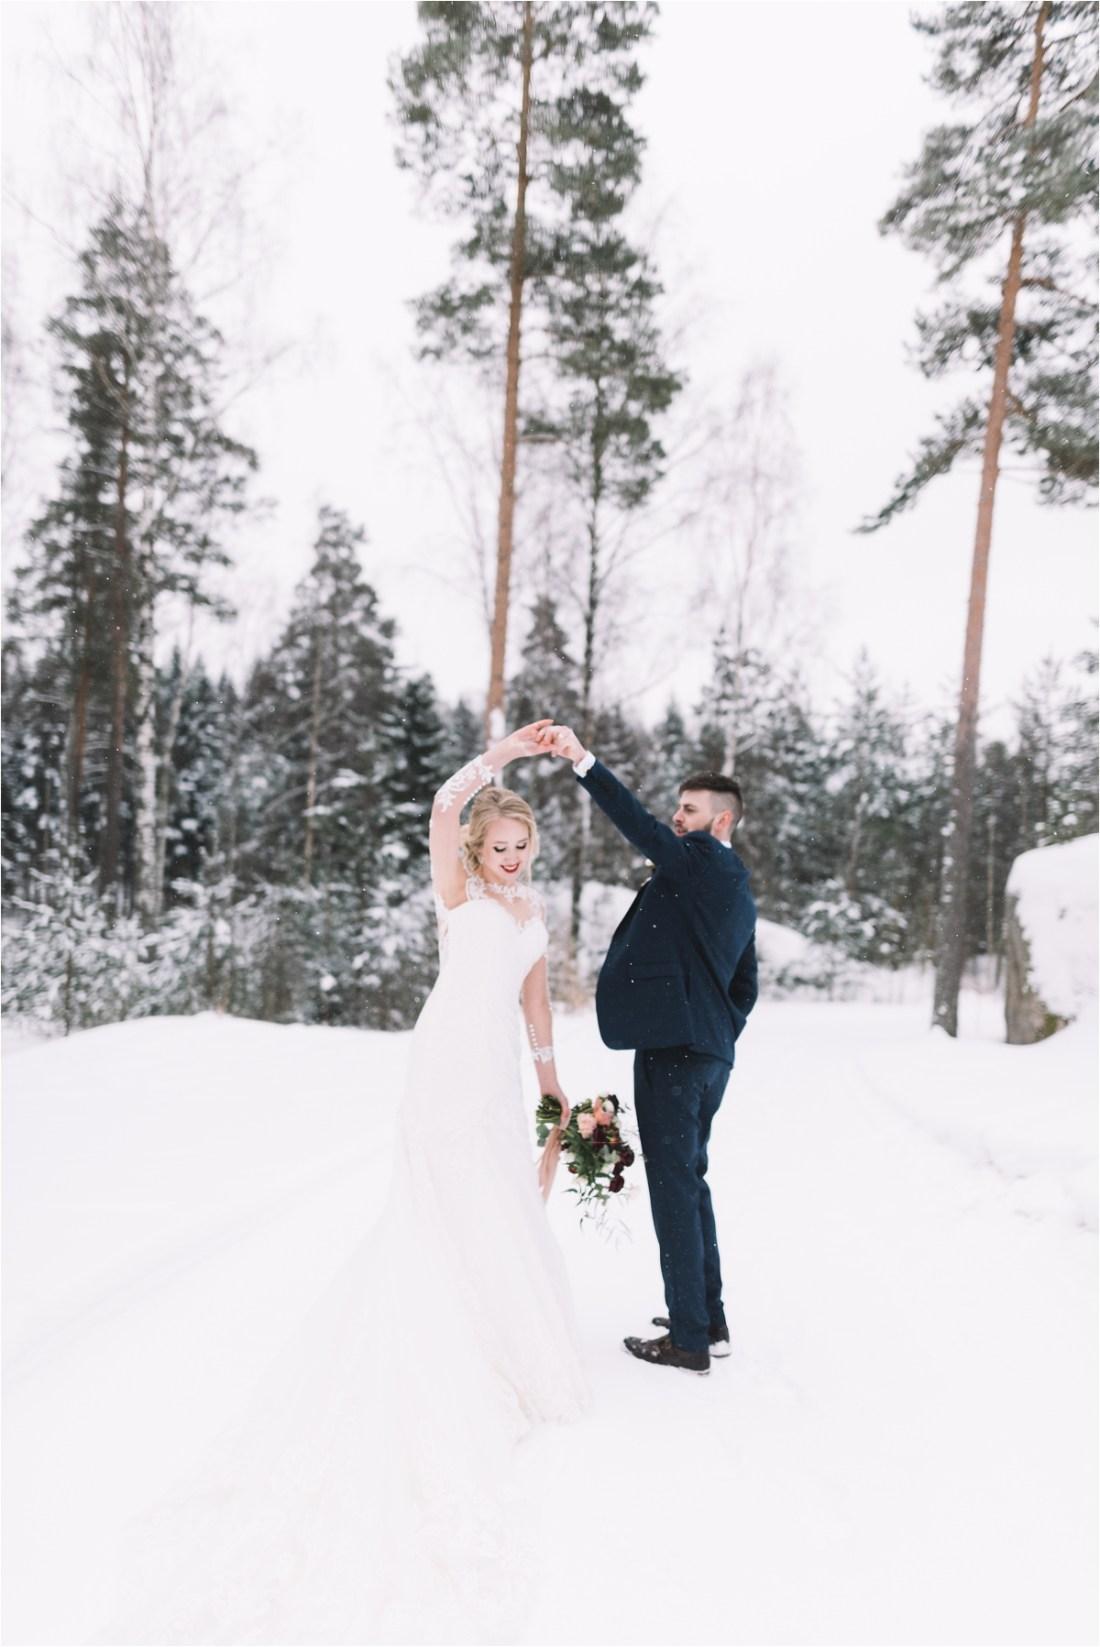 The bride and groom dance in the snow in Finland by Lucie Watson Photography